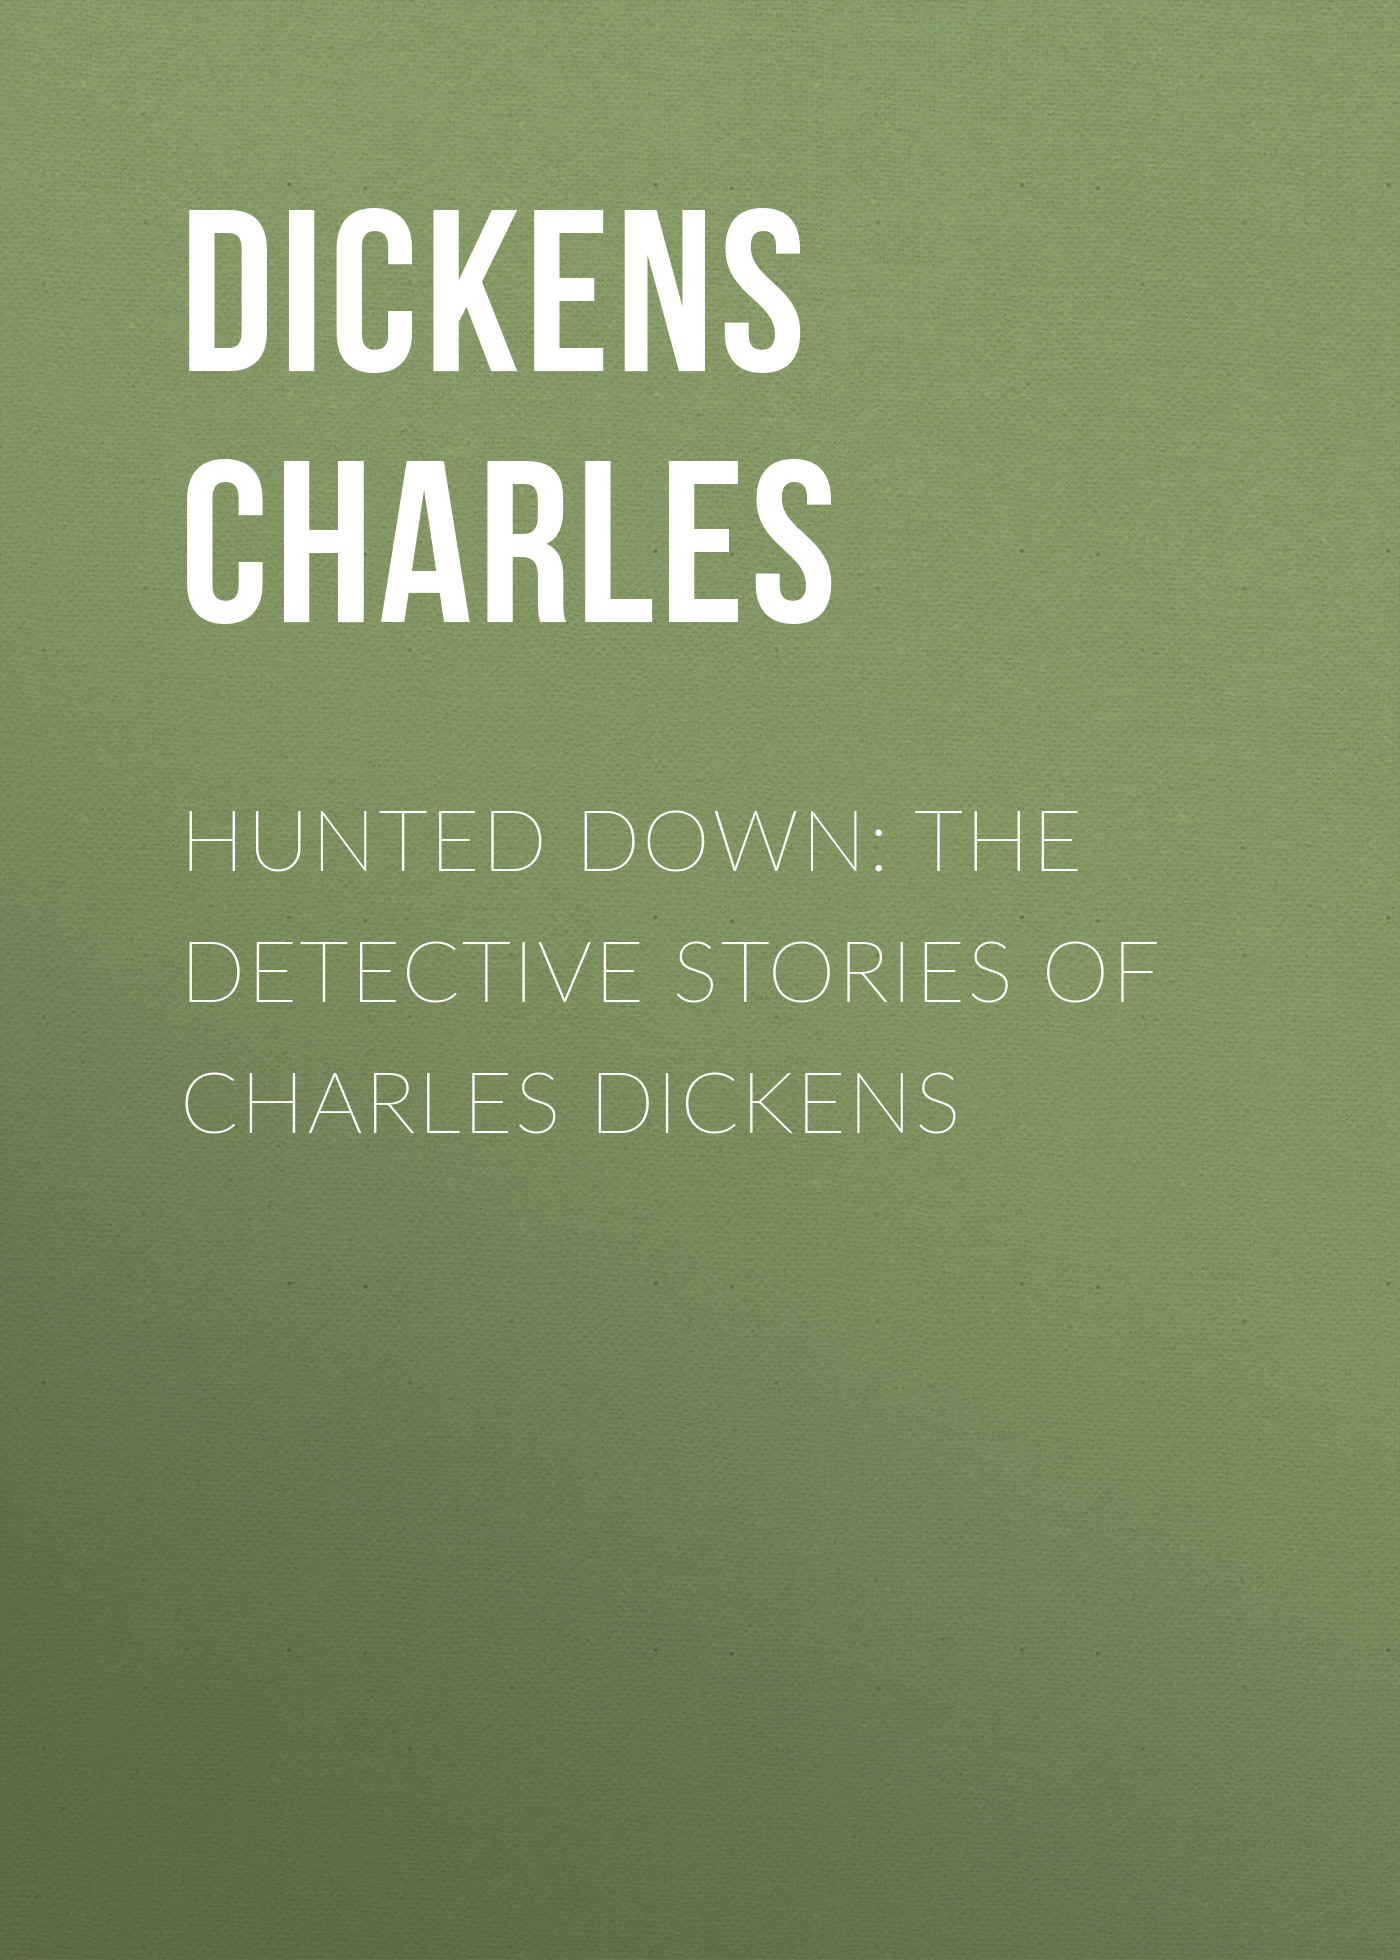 Чарльз Диккенс Hunted Down: The Detective Stories of Charles Dickens чарльз диккенс гимн рождеству связист dickens charles christmas carol the signalman